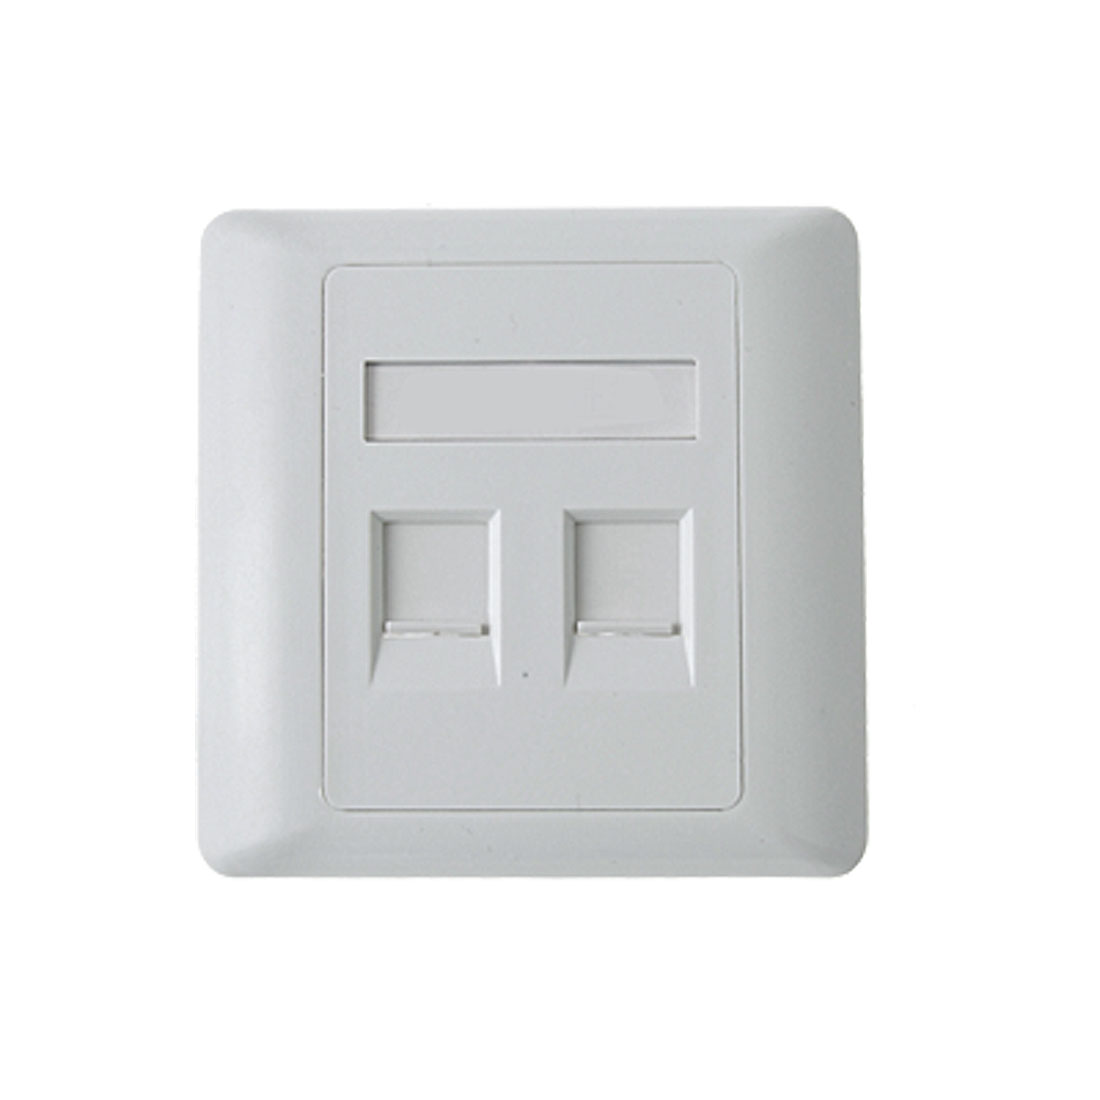 Home White RJ45 RJ11 2 Sokcets Plastic Square Panel